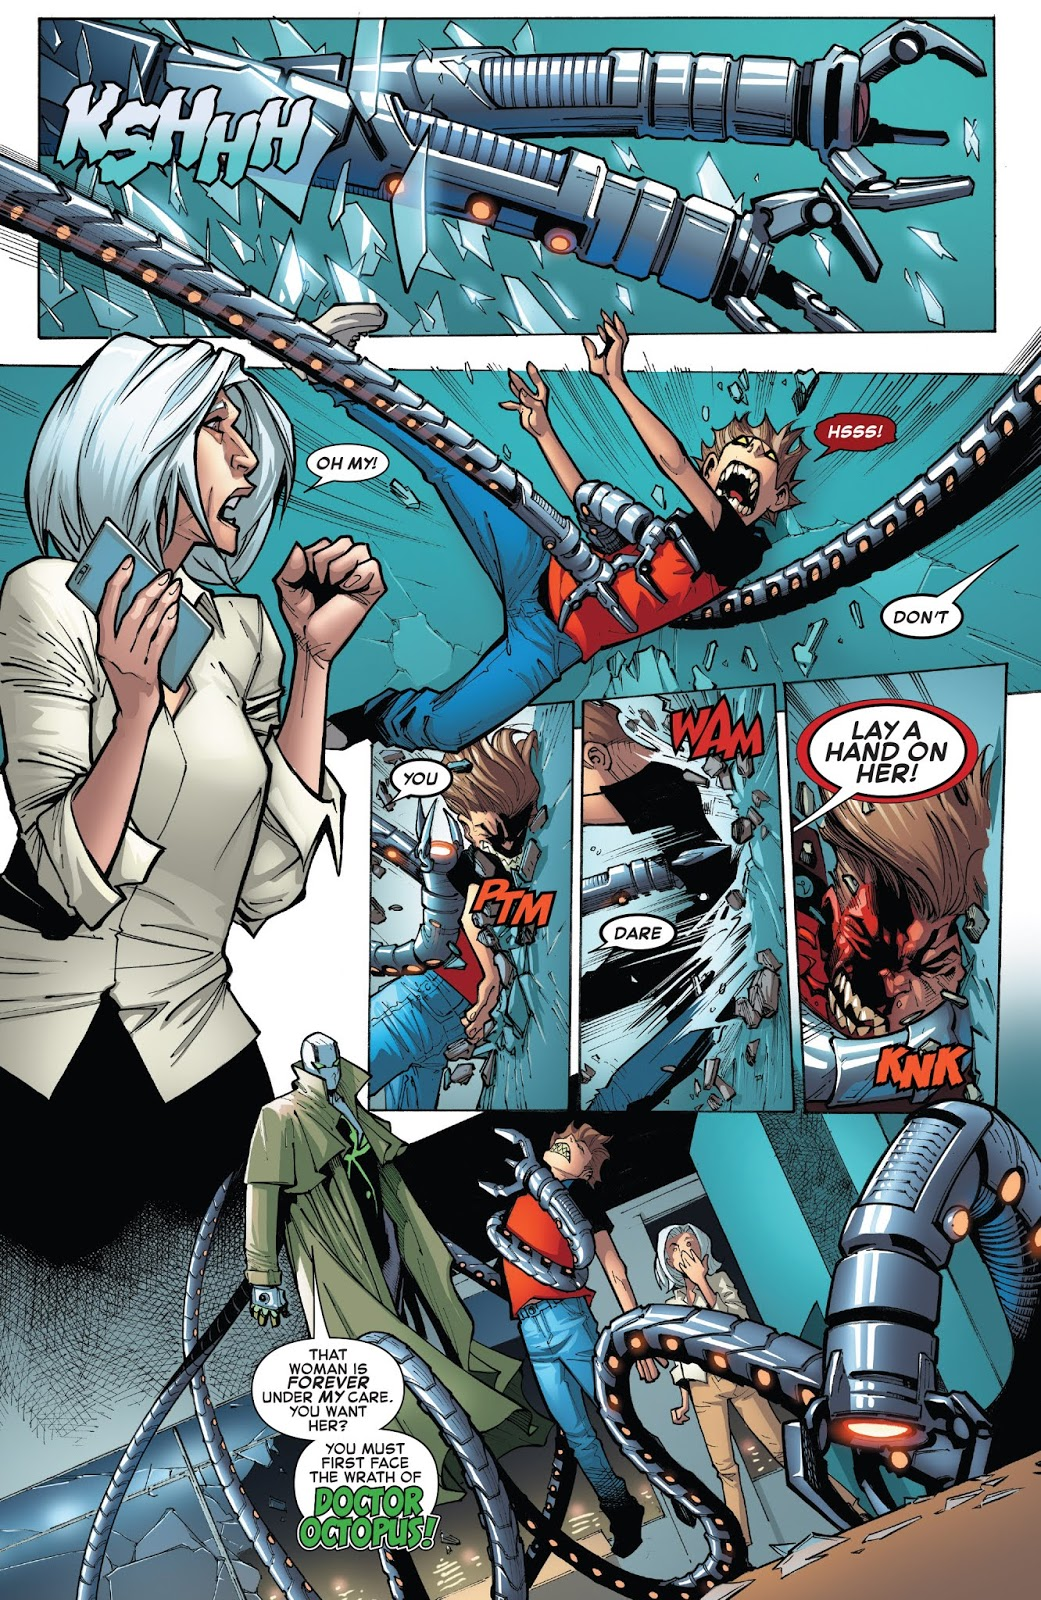 Doctor Octopus Protecting Aunt May | Comicnewbies